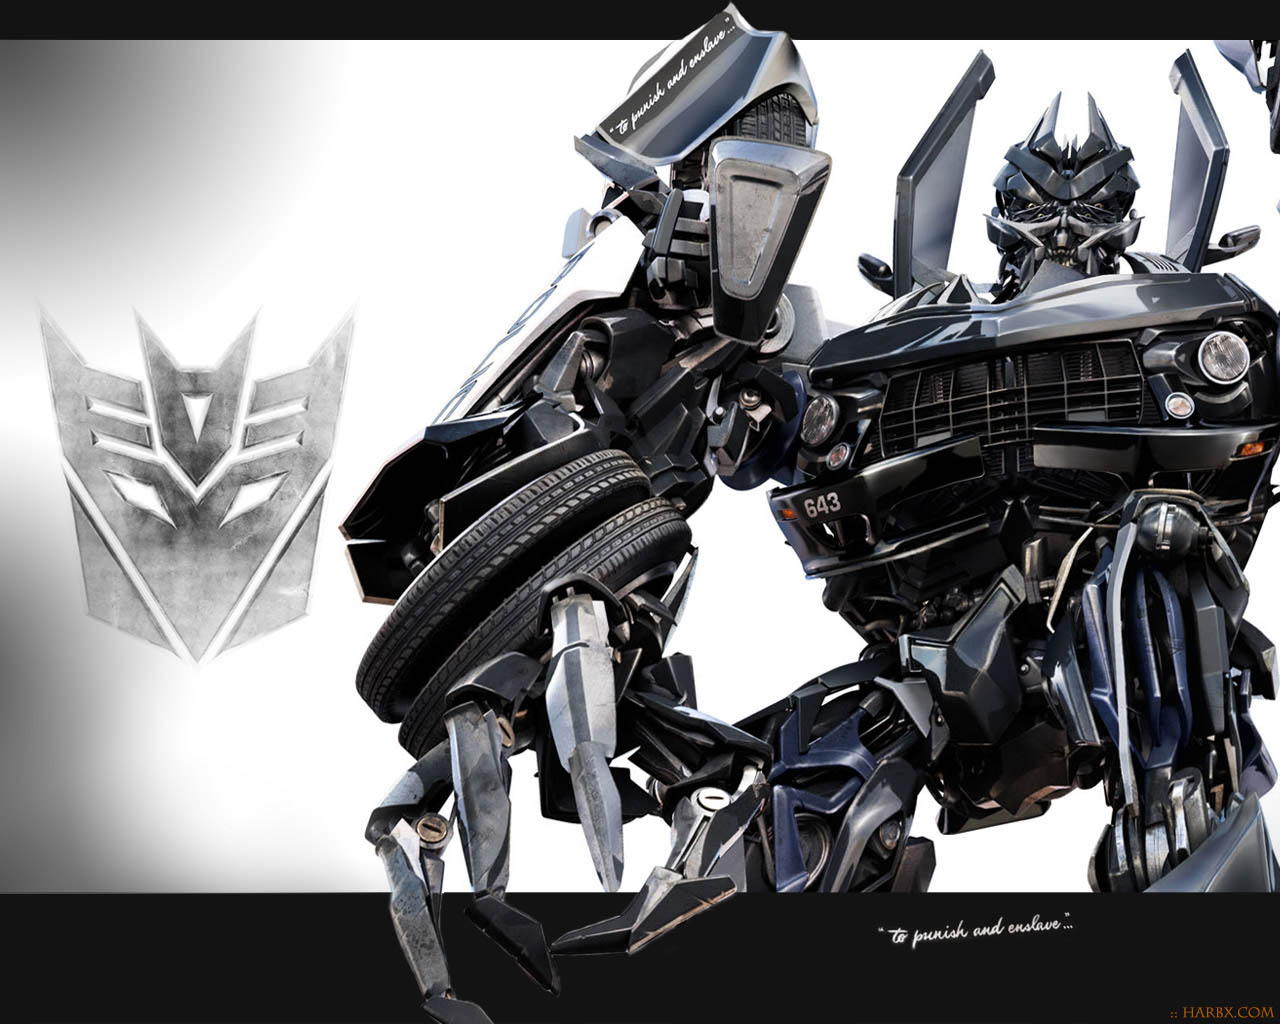 Transformers Fall Of Cybertron Hd Wallpapers 1080p Wallpaper Transformers 4 Hd Wallpaper